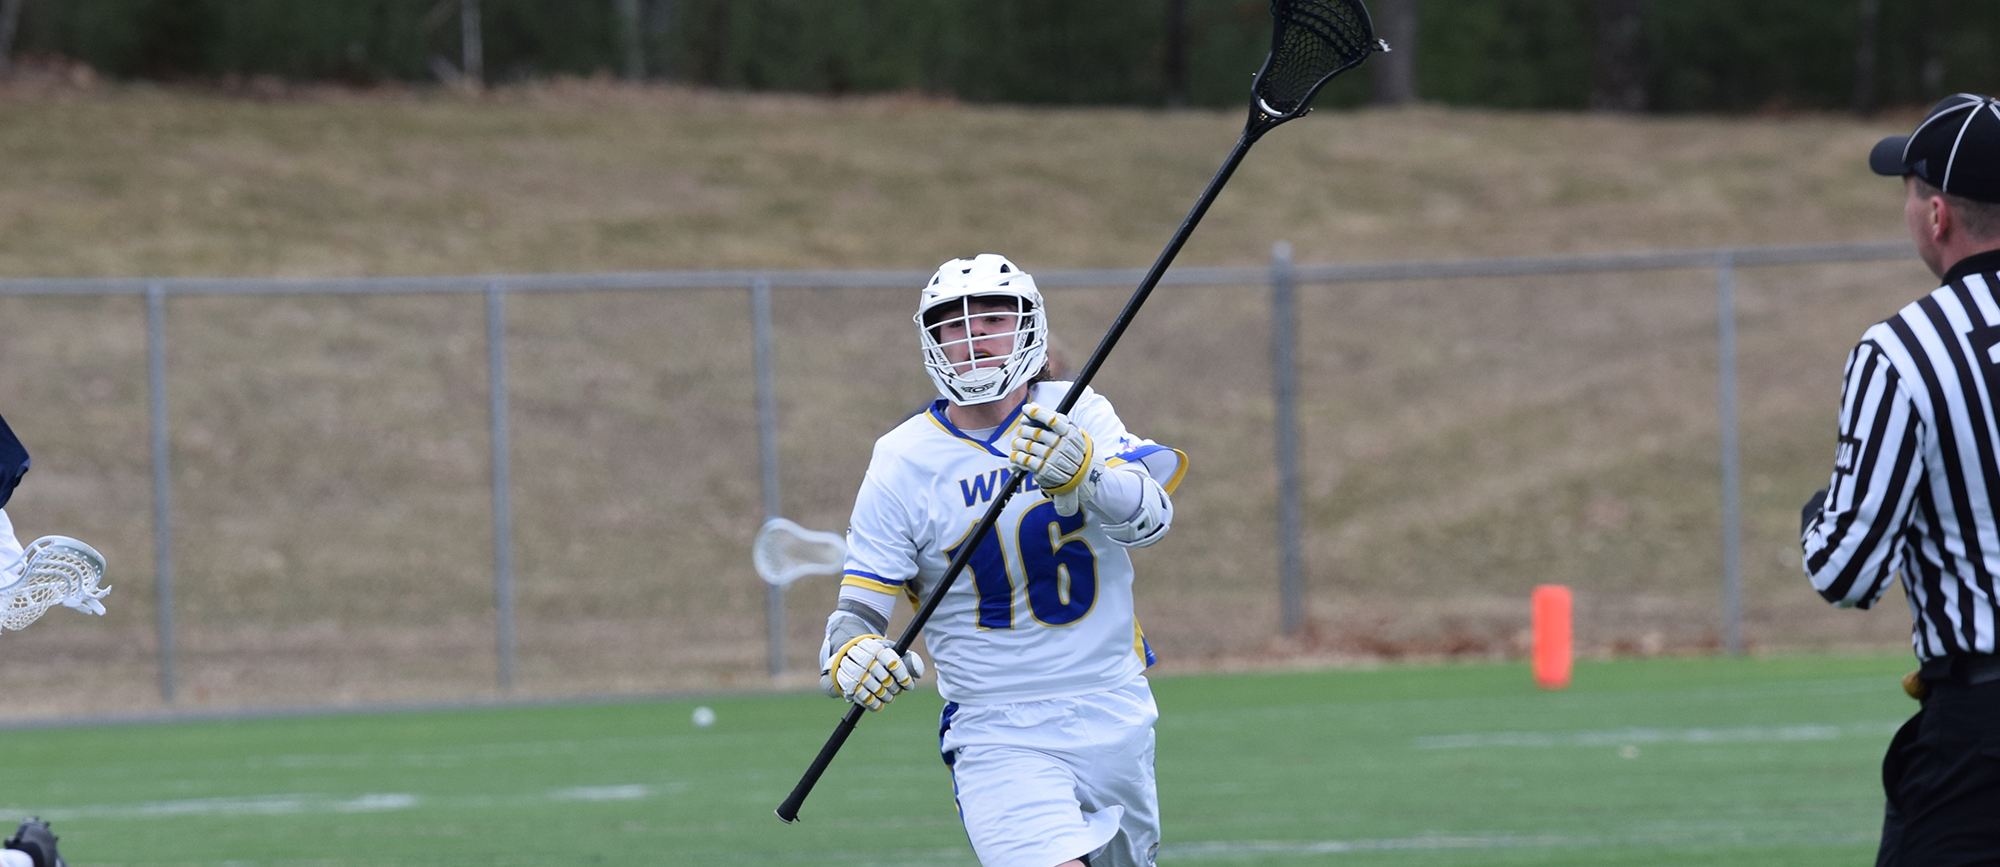 Freshman Mitch Weiss recorded a team-high six ground balls in Western New England's 8-7 loss to Clark on Saturday. (Photo by Courtney Carlson)